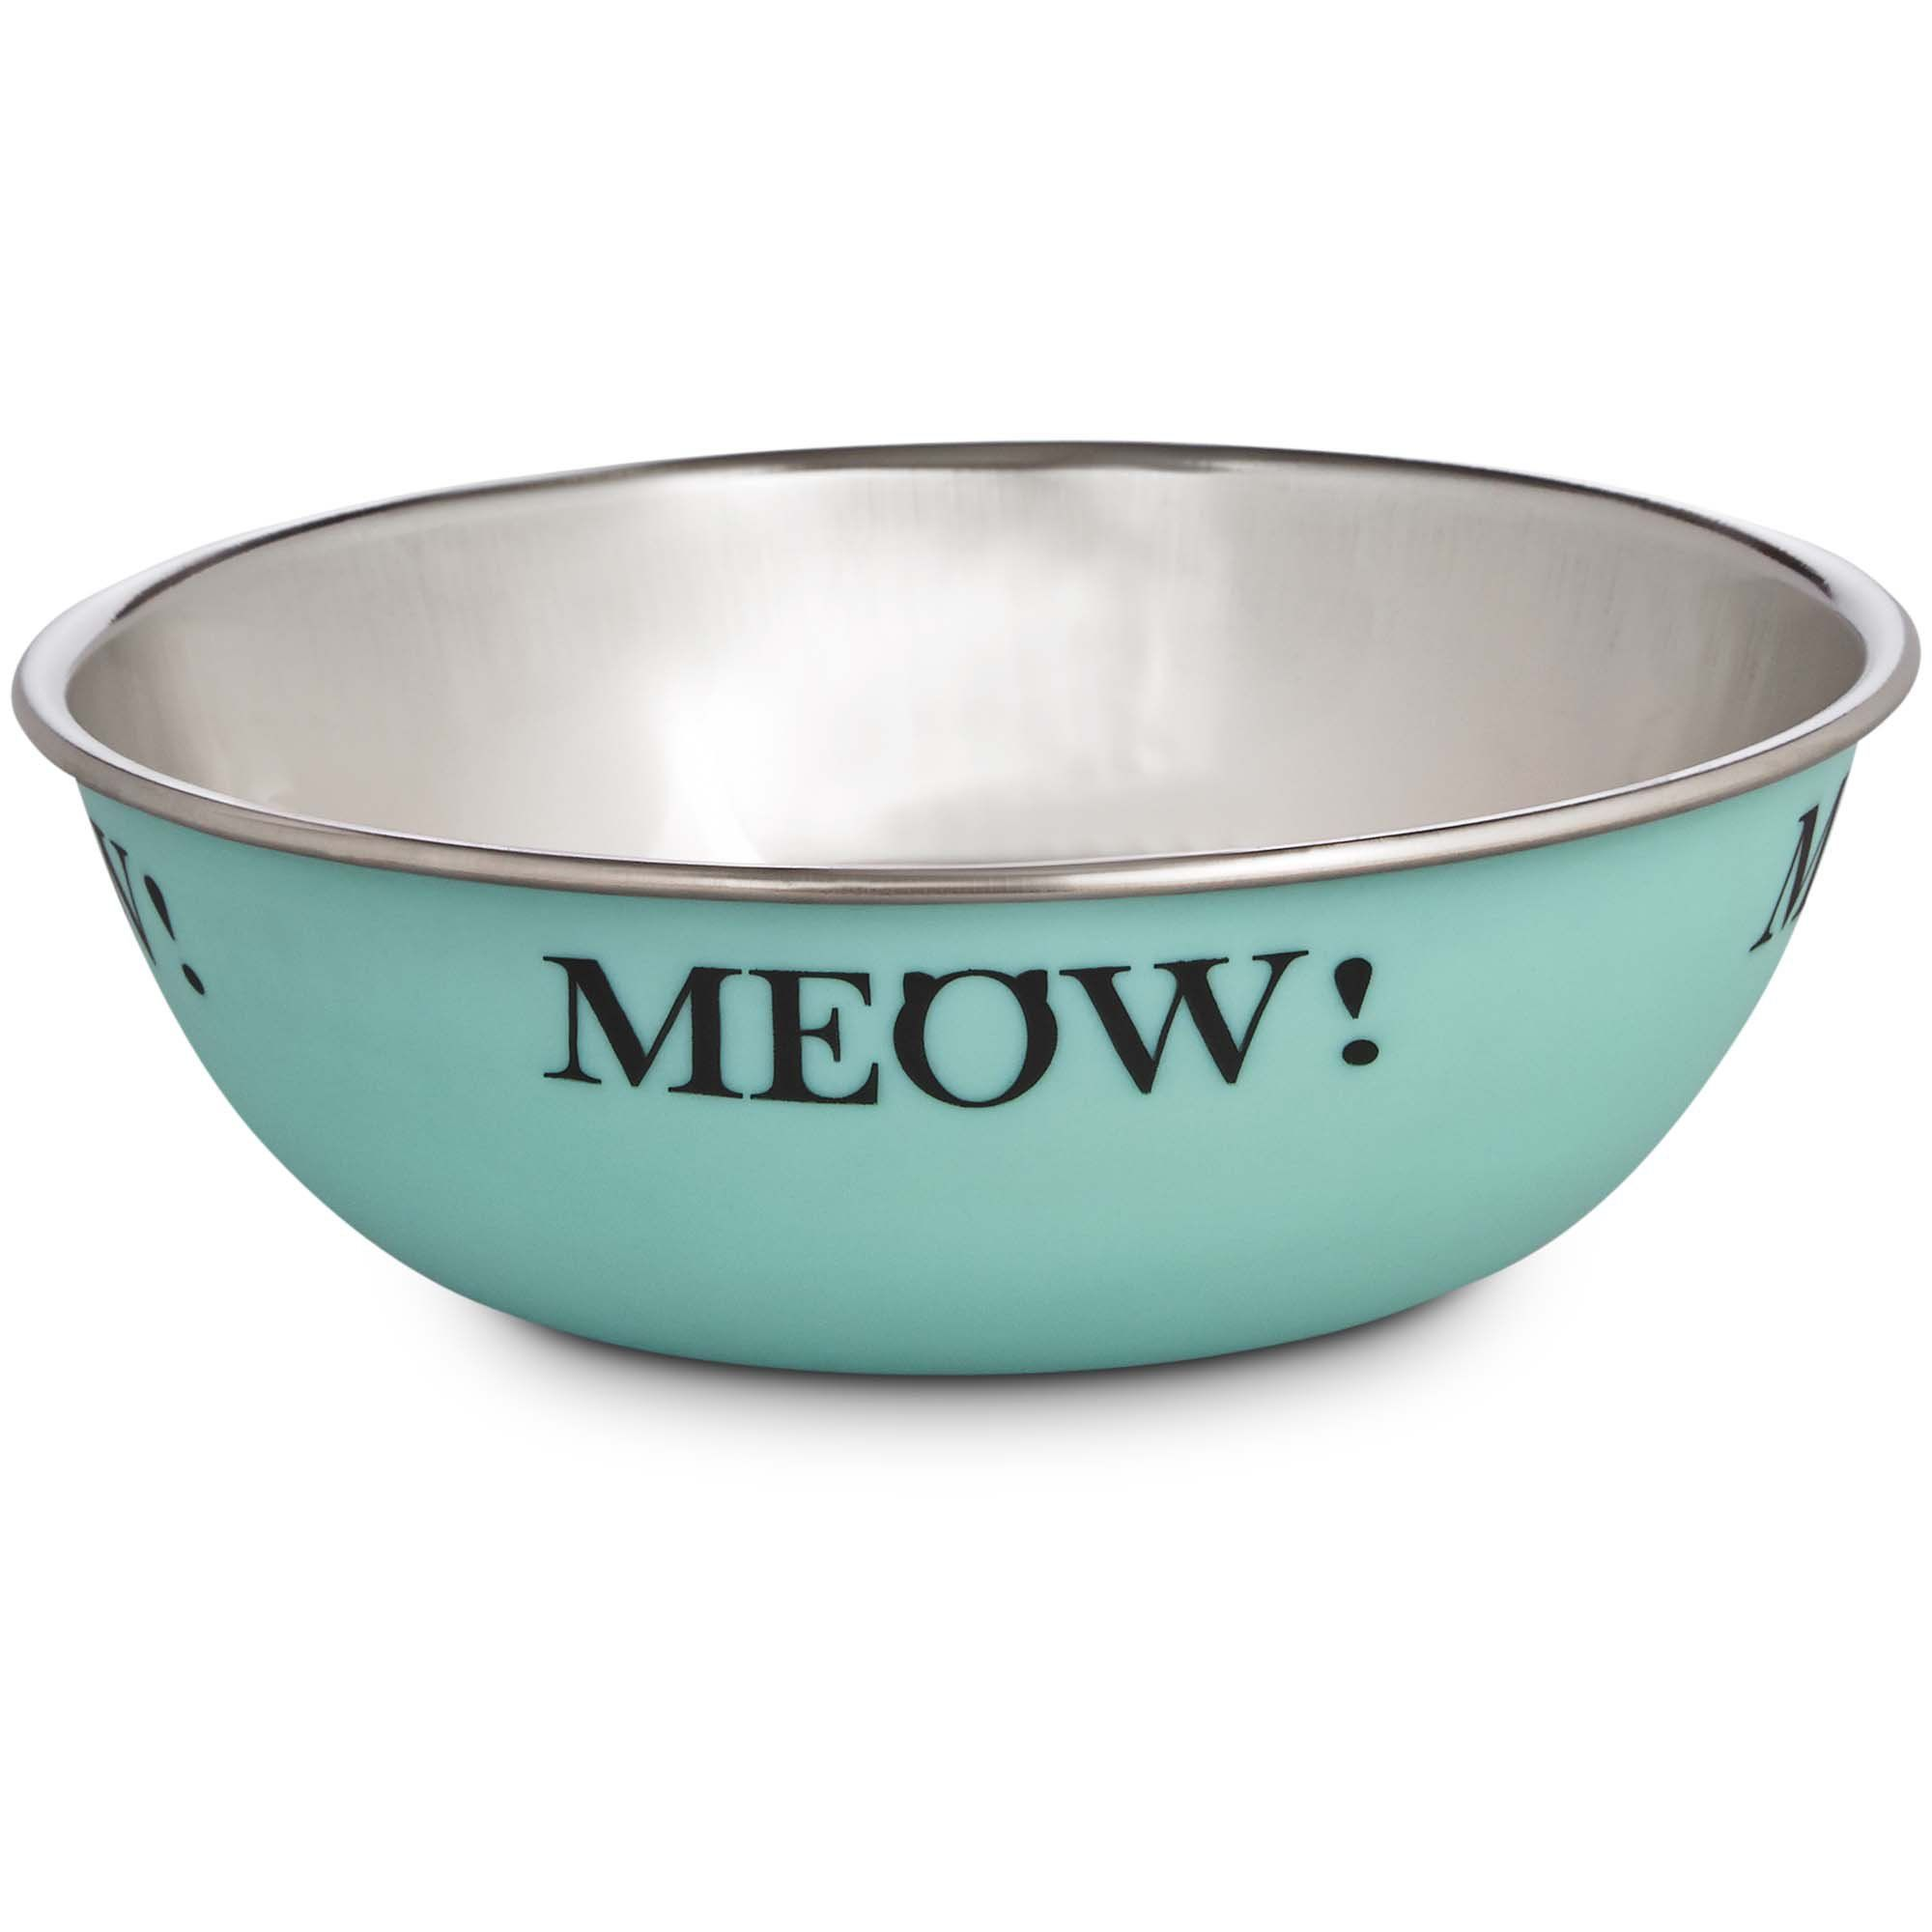 Harmony Mint Stainless Steel Cat Bowl 1 Cup 1 Fz Cat Bowls Bowl Petco